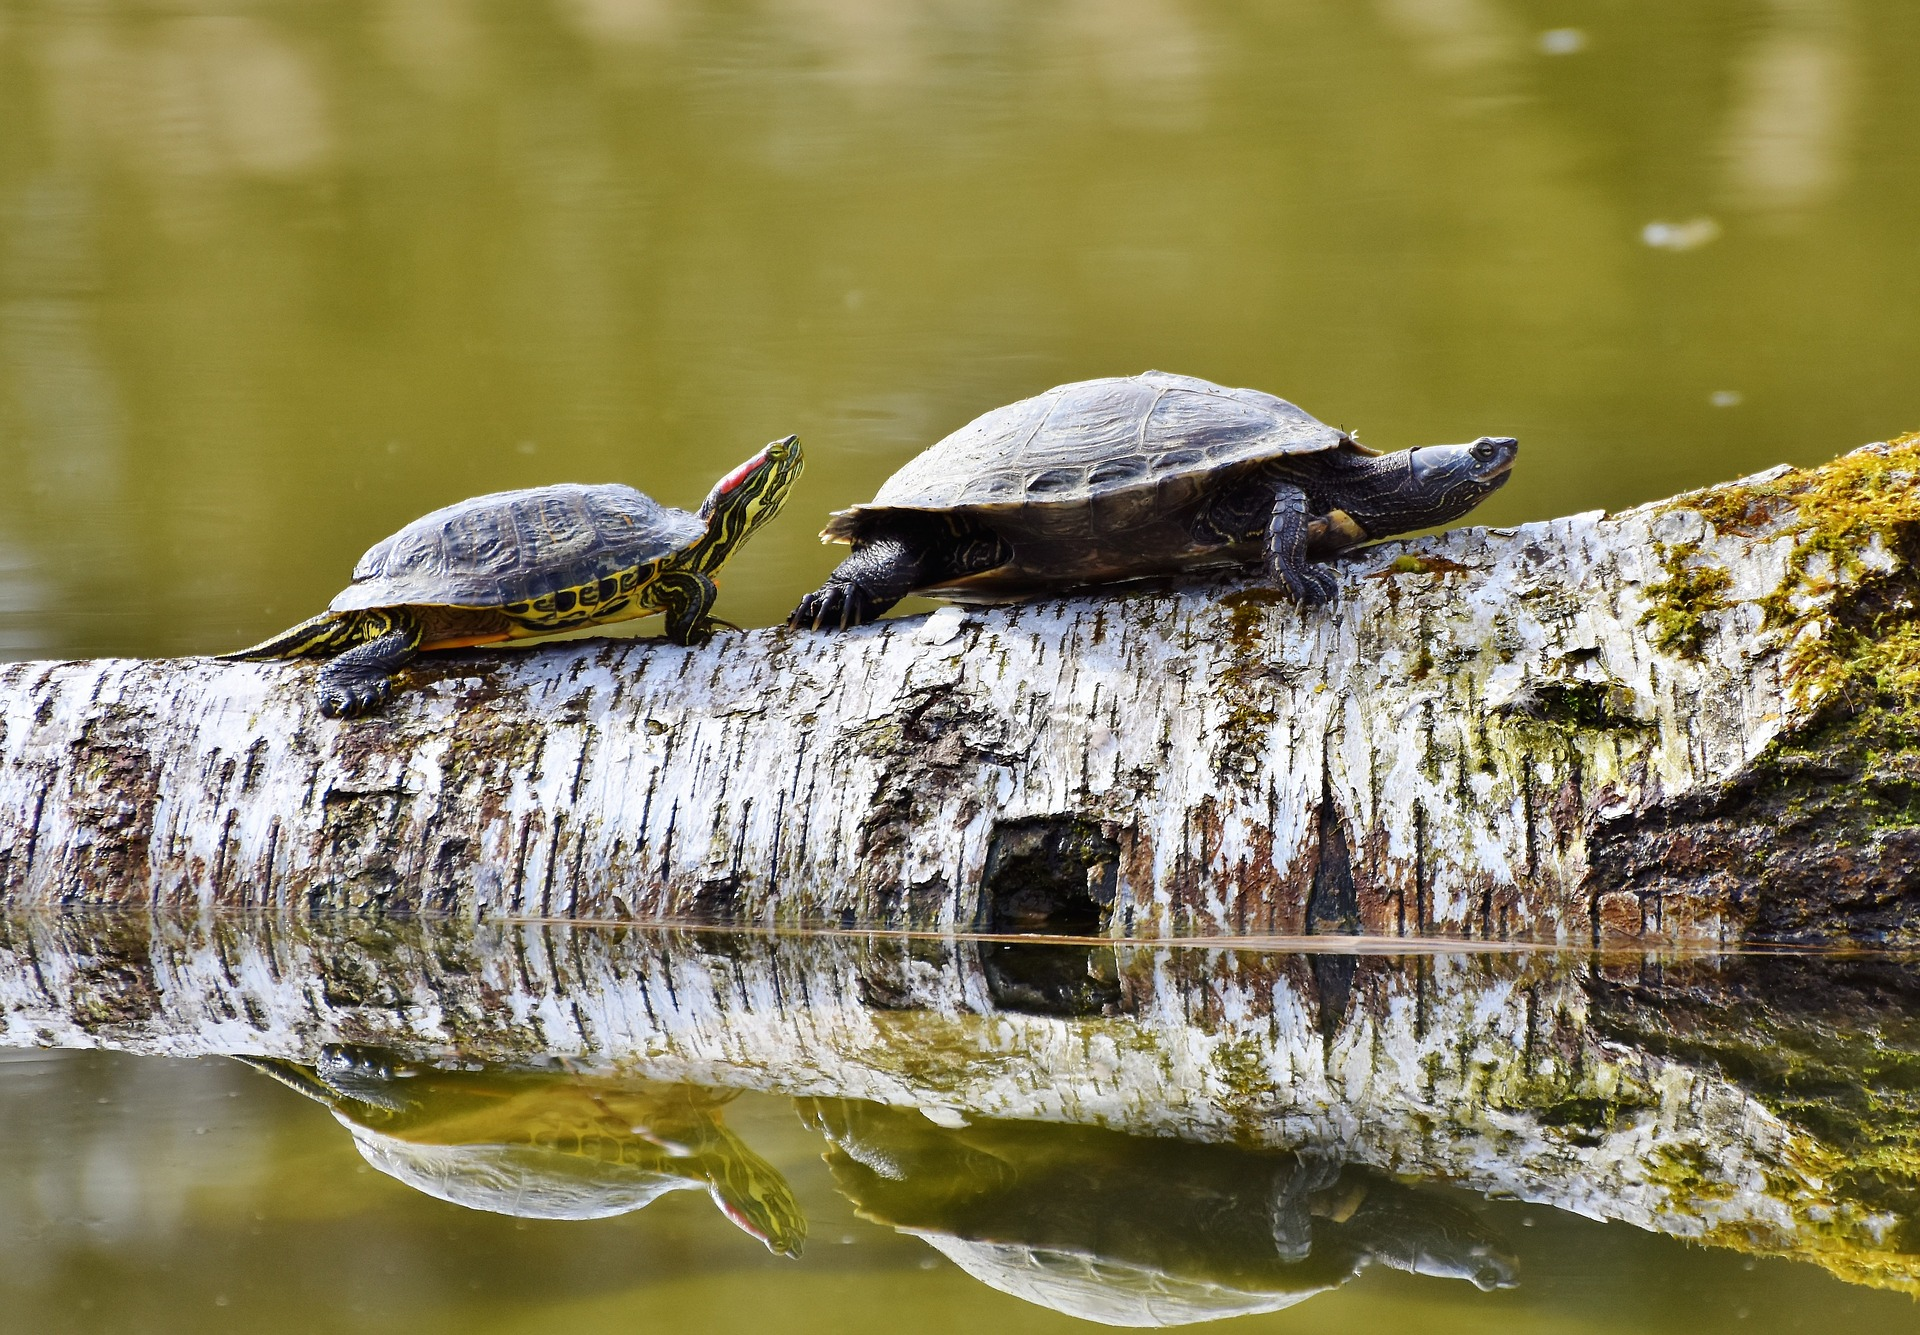 Two turtles, the front one larger, on a log that is partially in water, reflecting the turtles.